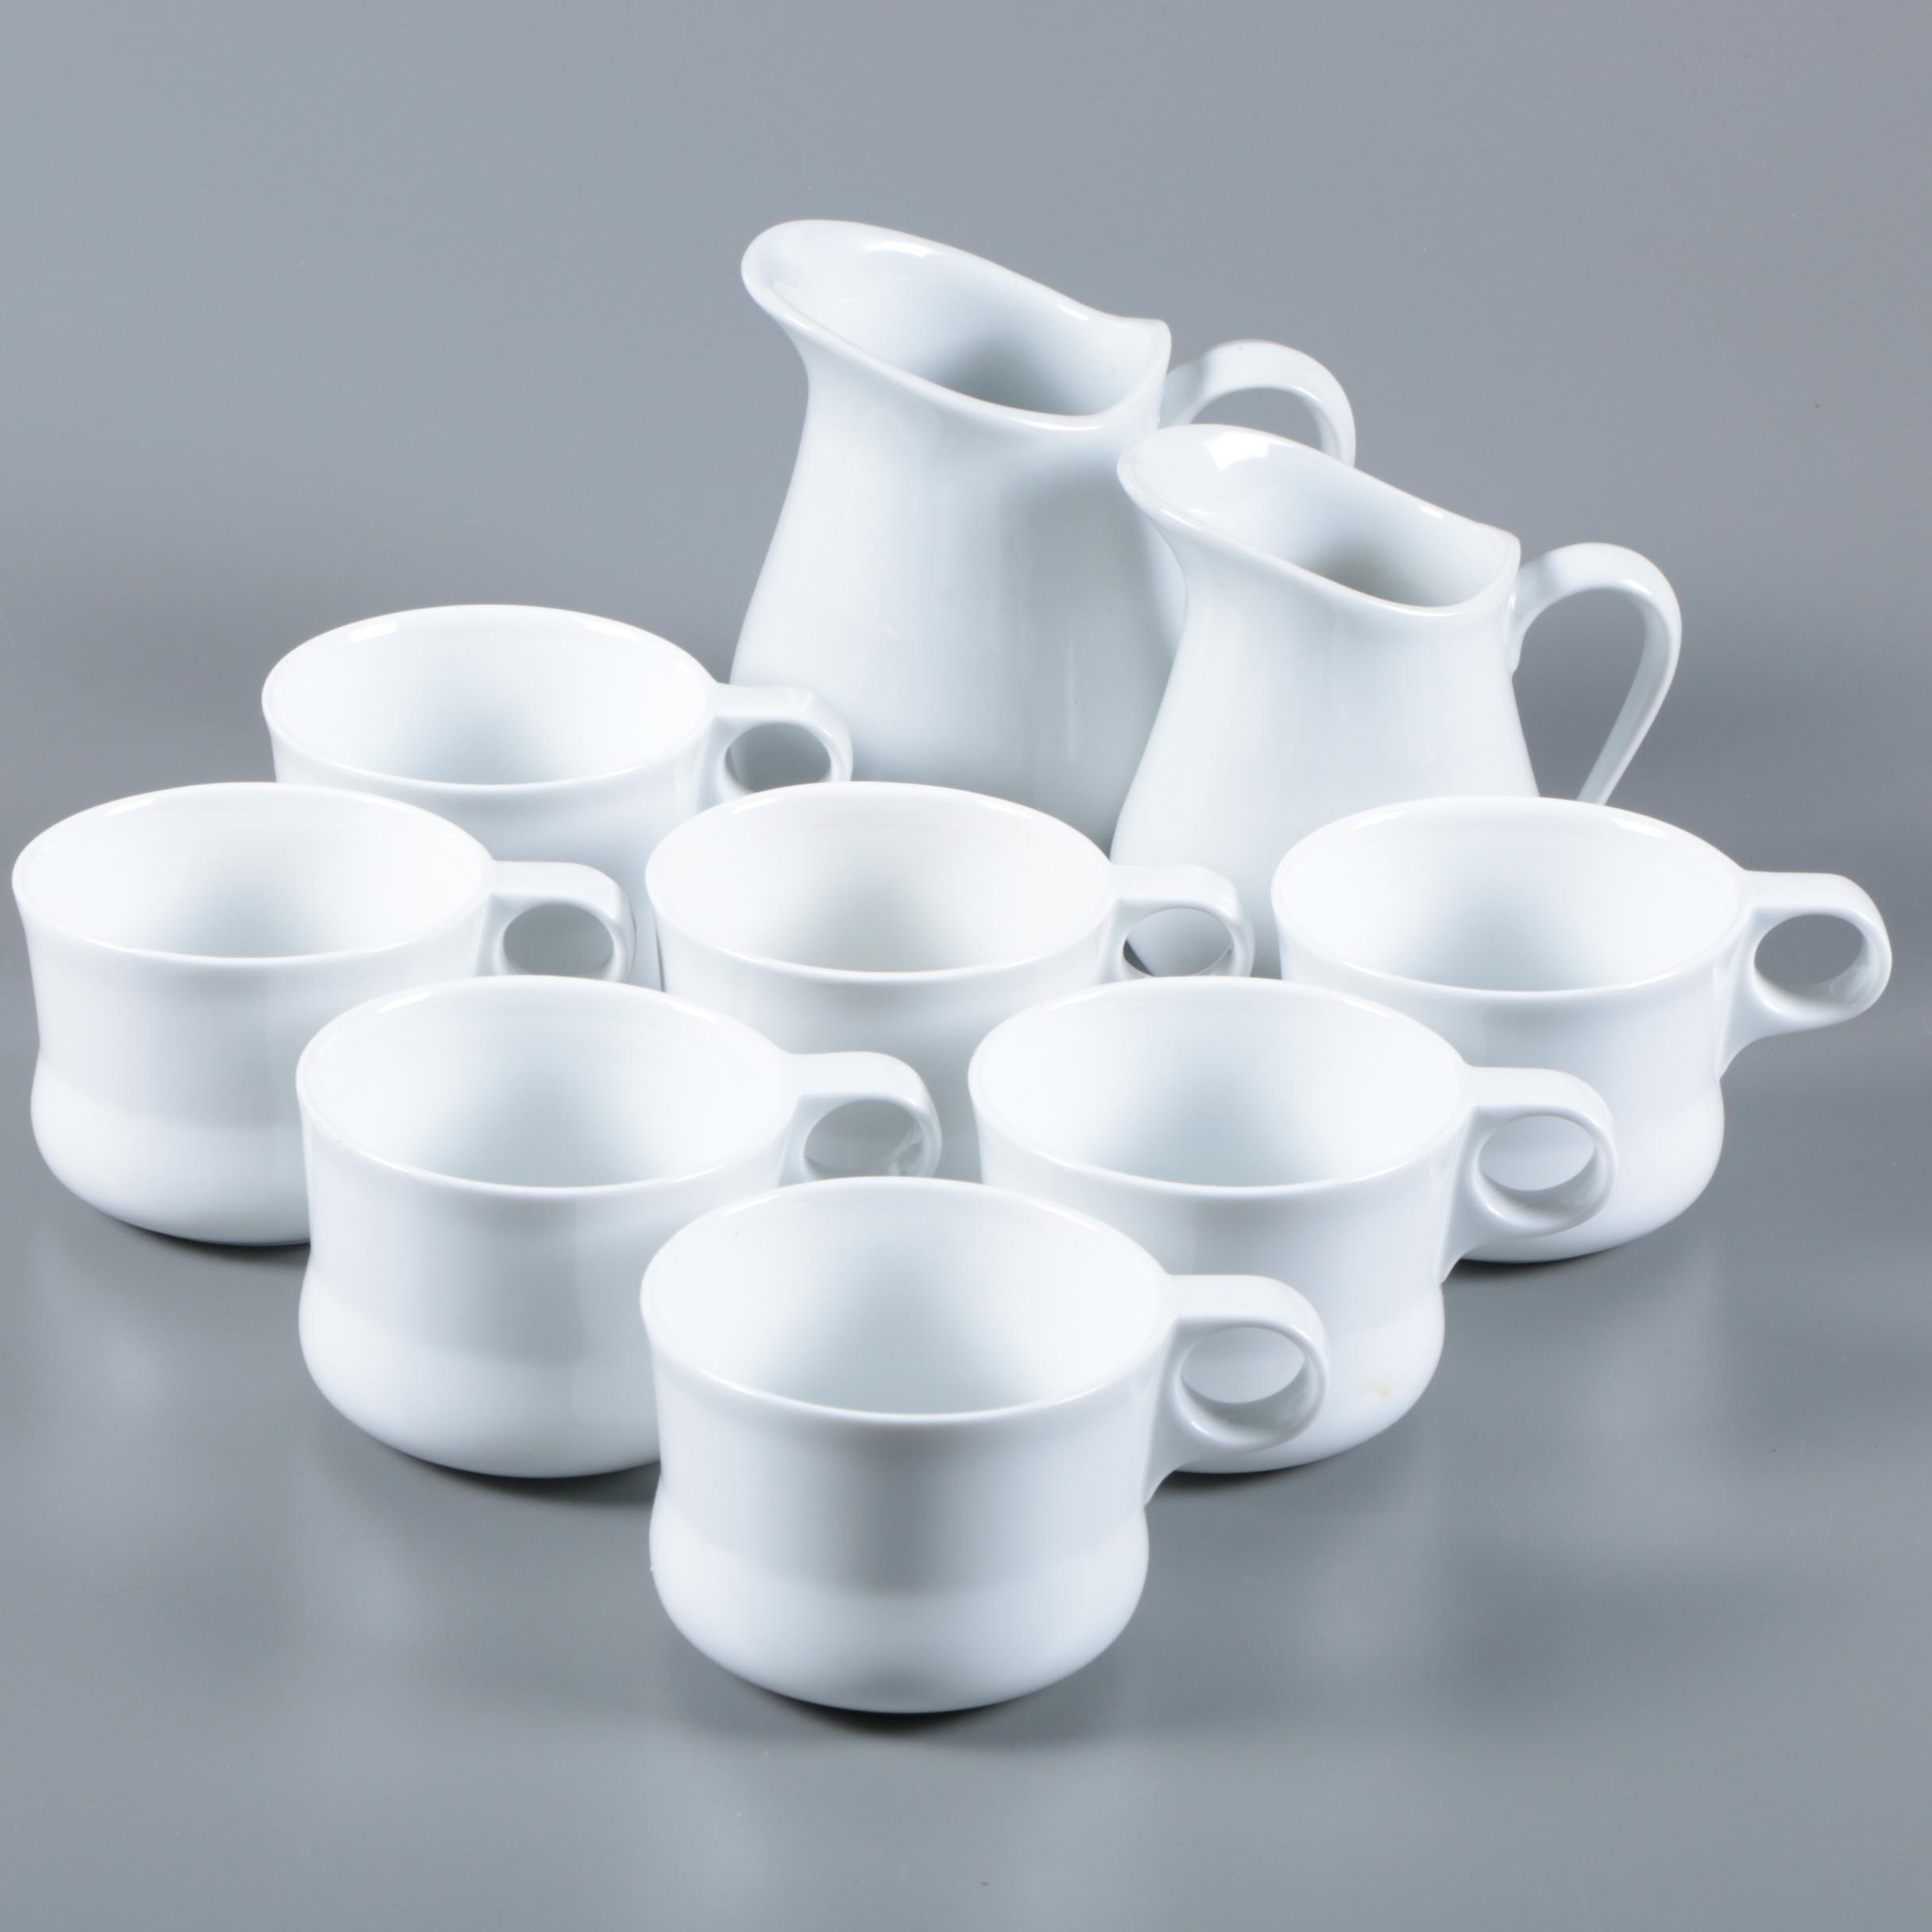 """Crate & Barrel """"Pause"""" Pitchers and Mugs Designed by Sagaform"""